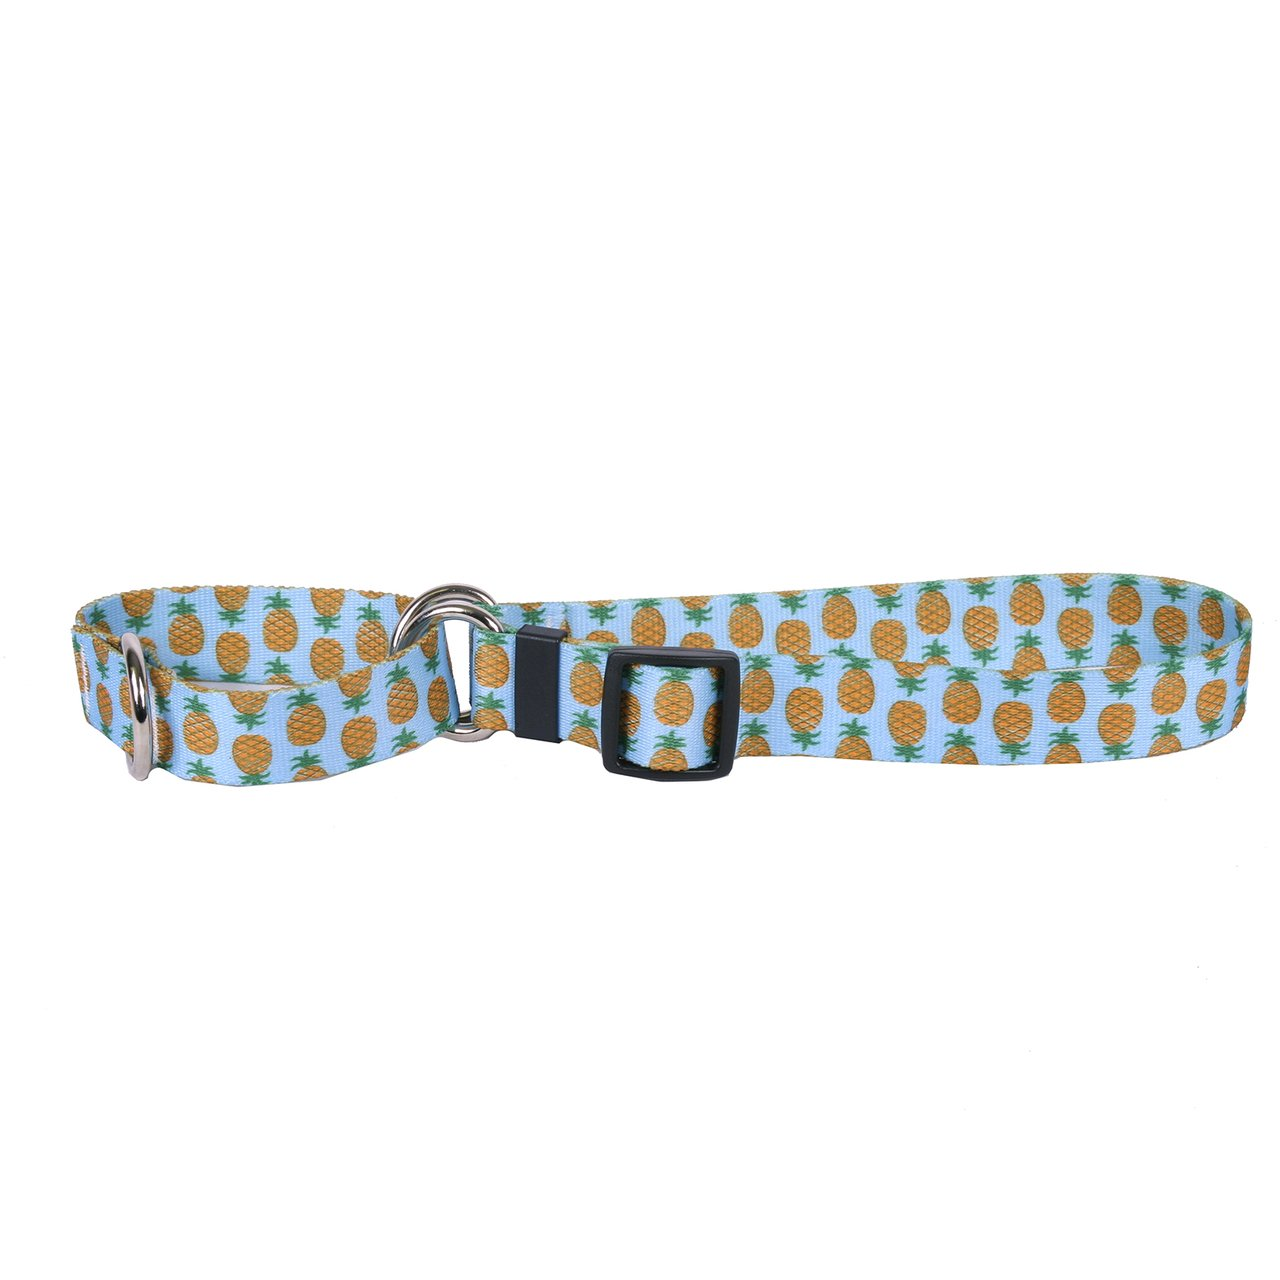 Yellow Dog Design Pineapples Blue Martingale Dog Collar, Medium-1'' Wide and fits neck sizes 14 to 20''